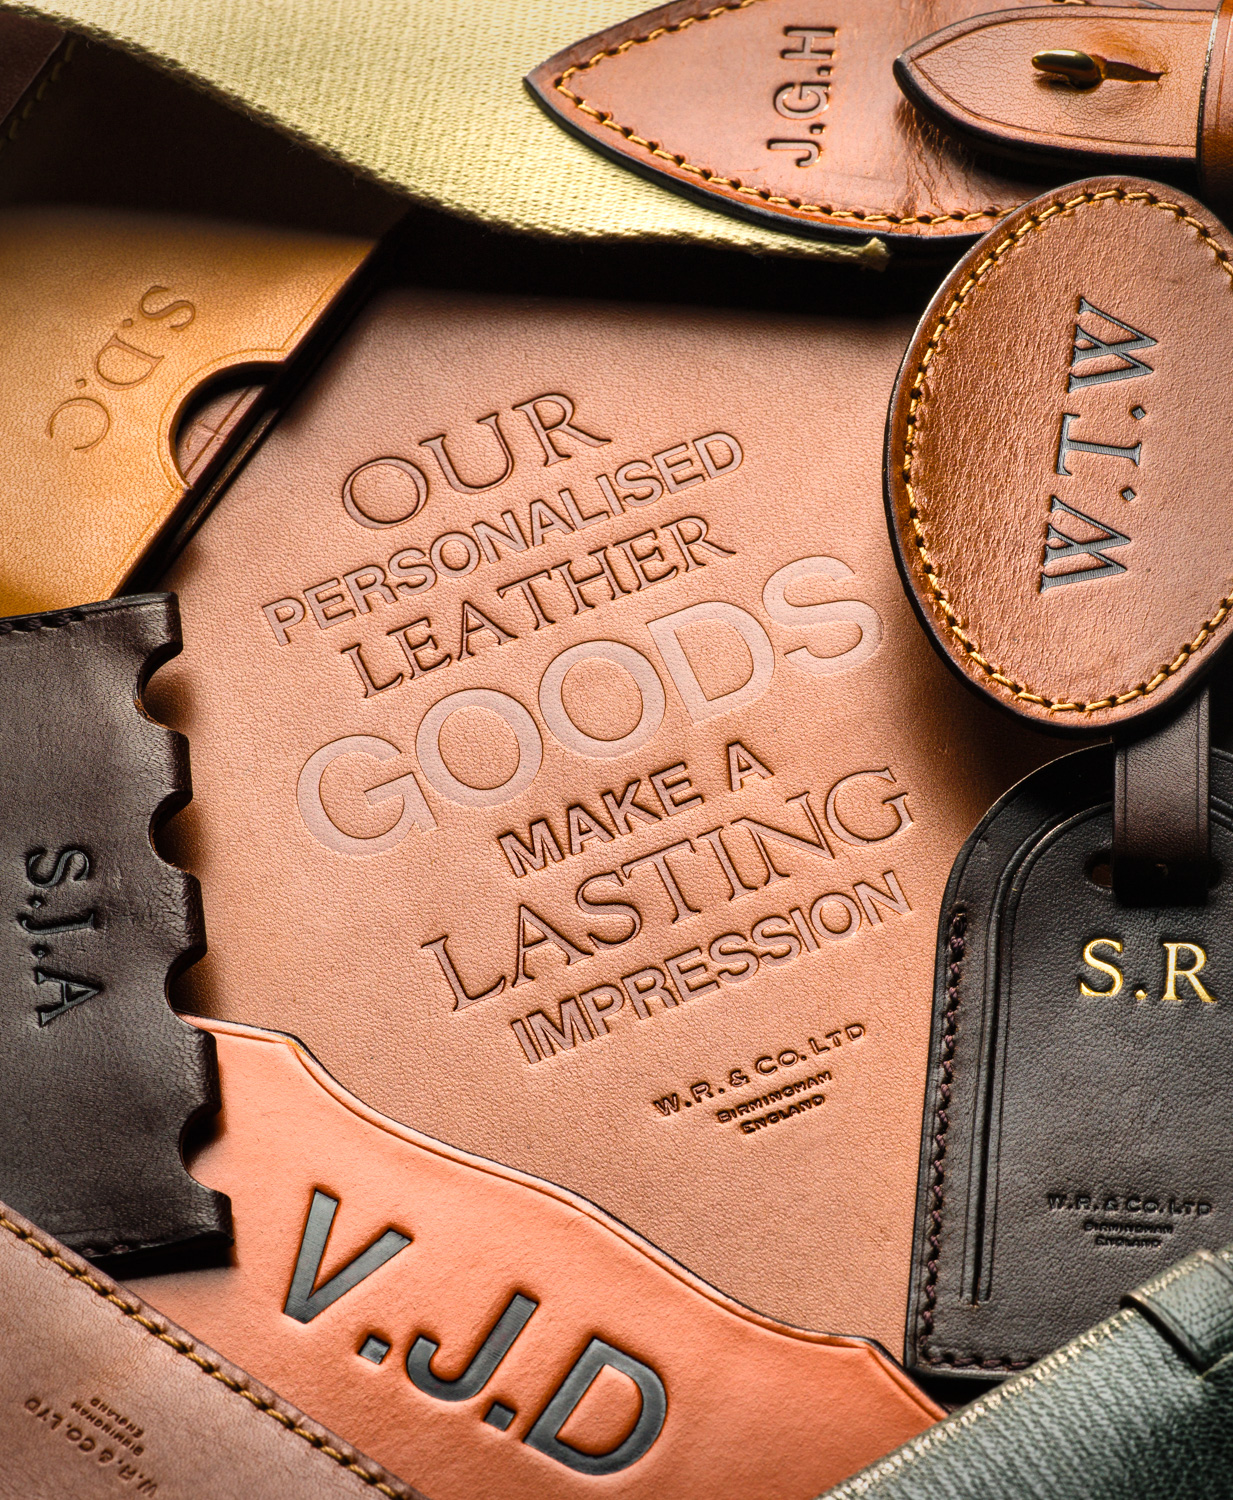 Leather Initials on leather goods at Westley Richards.